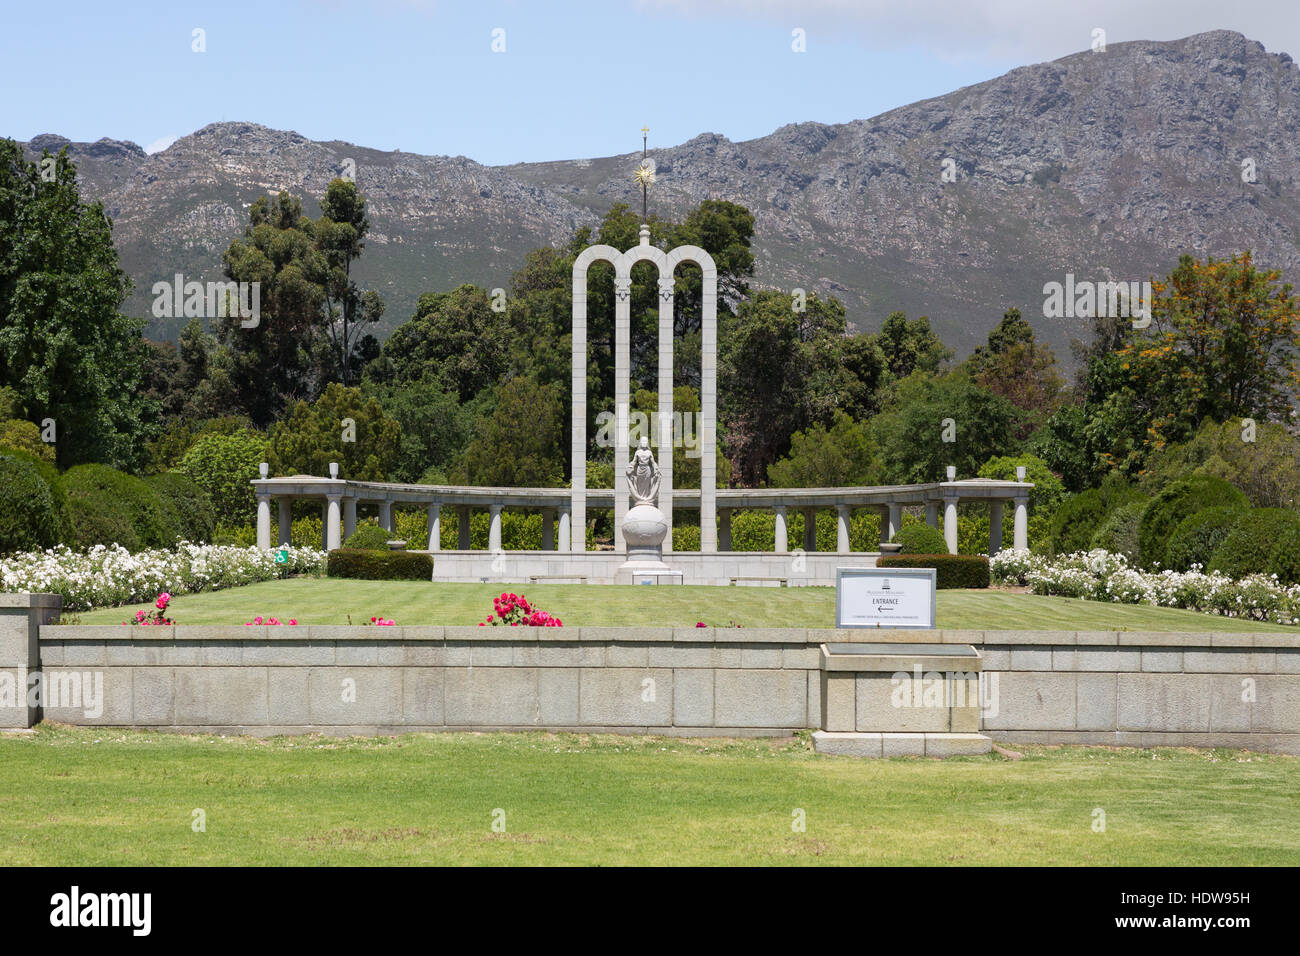 The Huguenot Monument, Franschhoek, South Africa - Stock Image